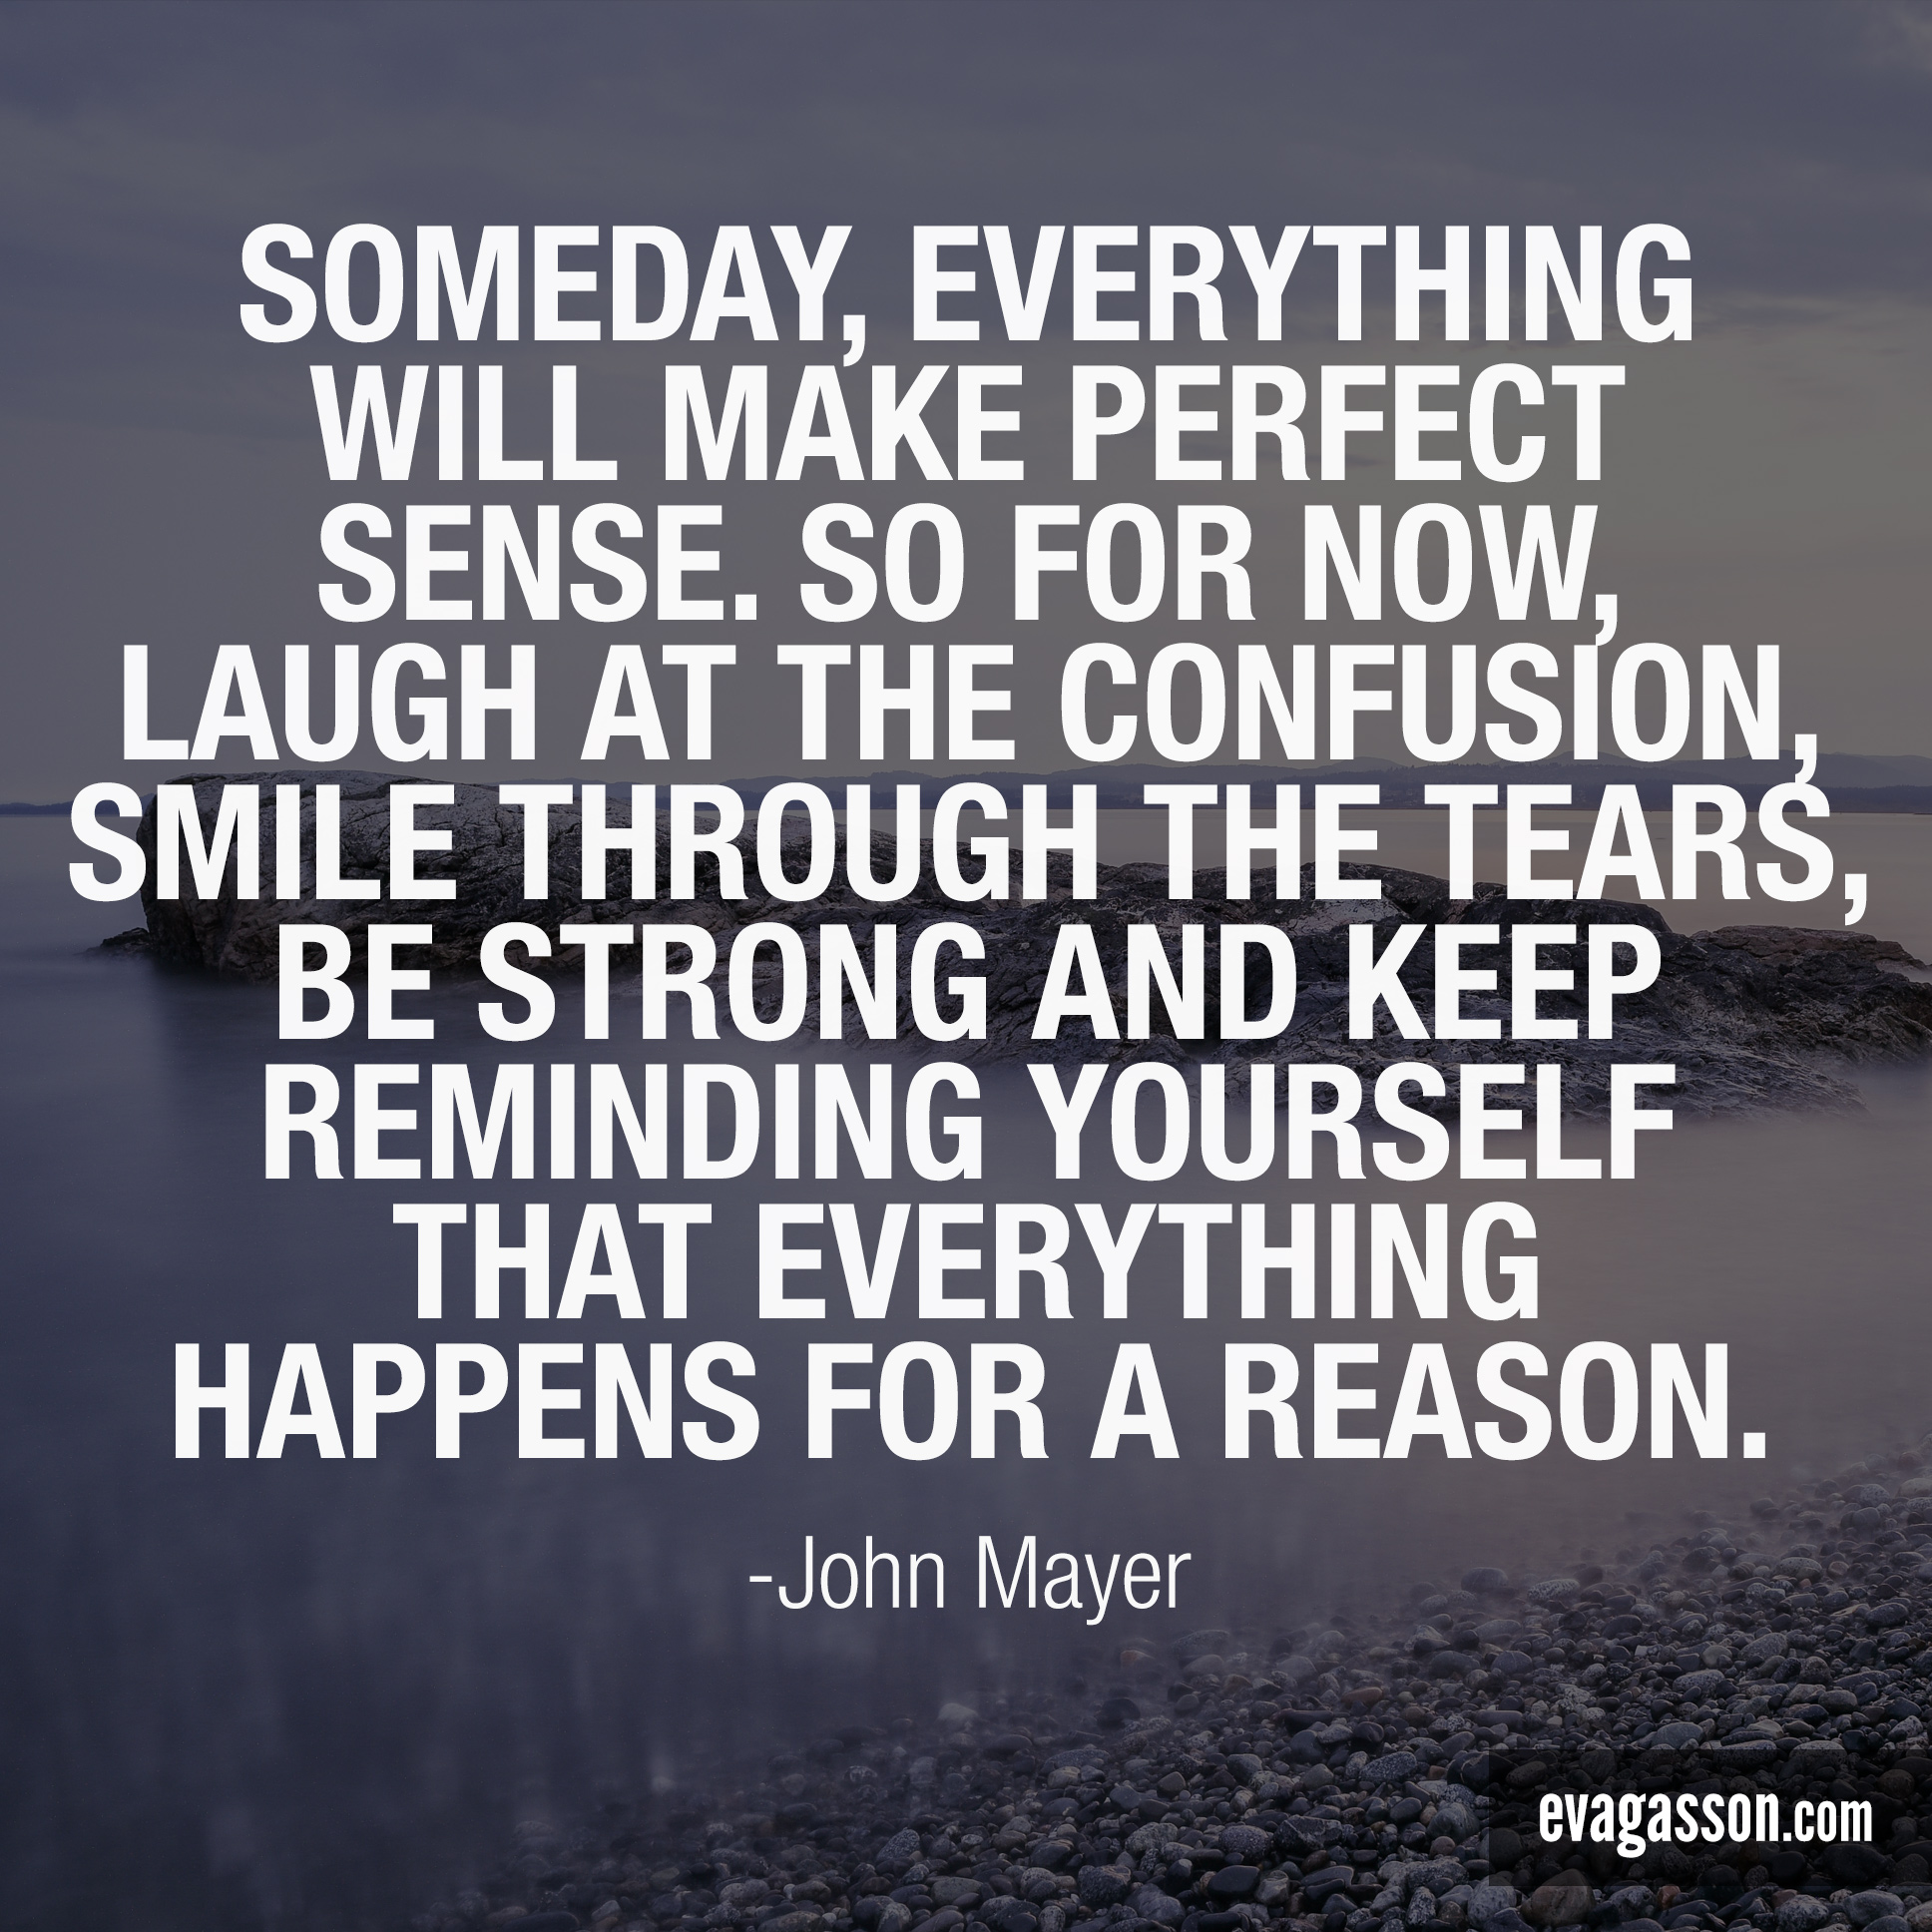 Instagram Quotes | Someday everything will make perfect sense So for now laugh at the confusion smile through the tears and keep reminding yourself that everything happ